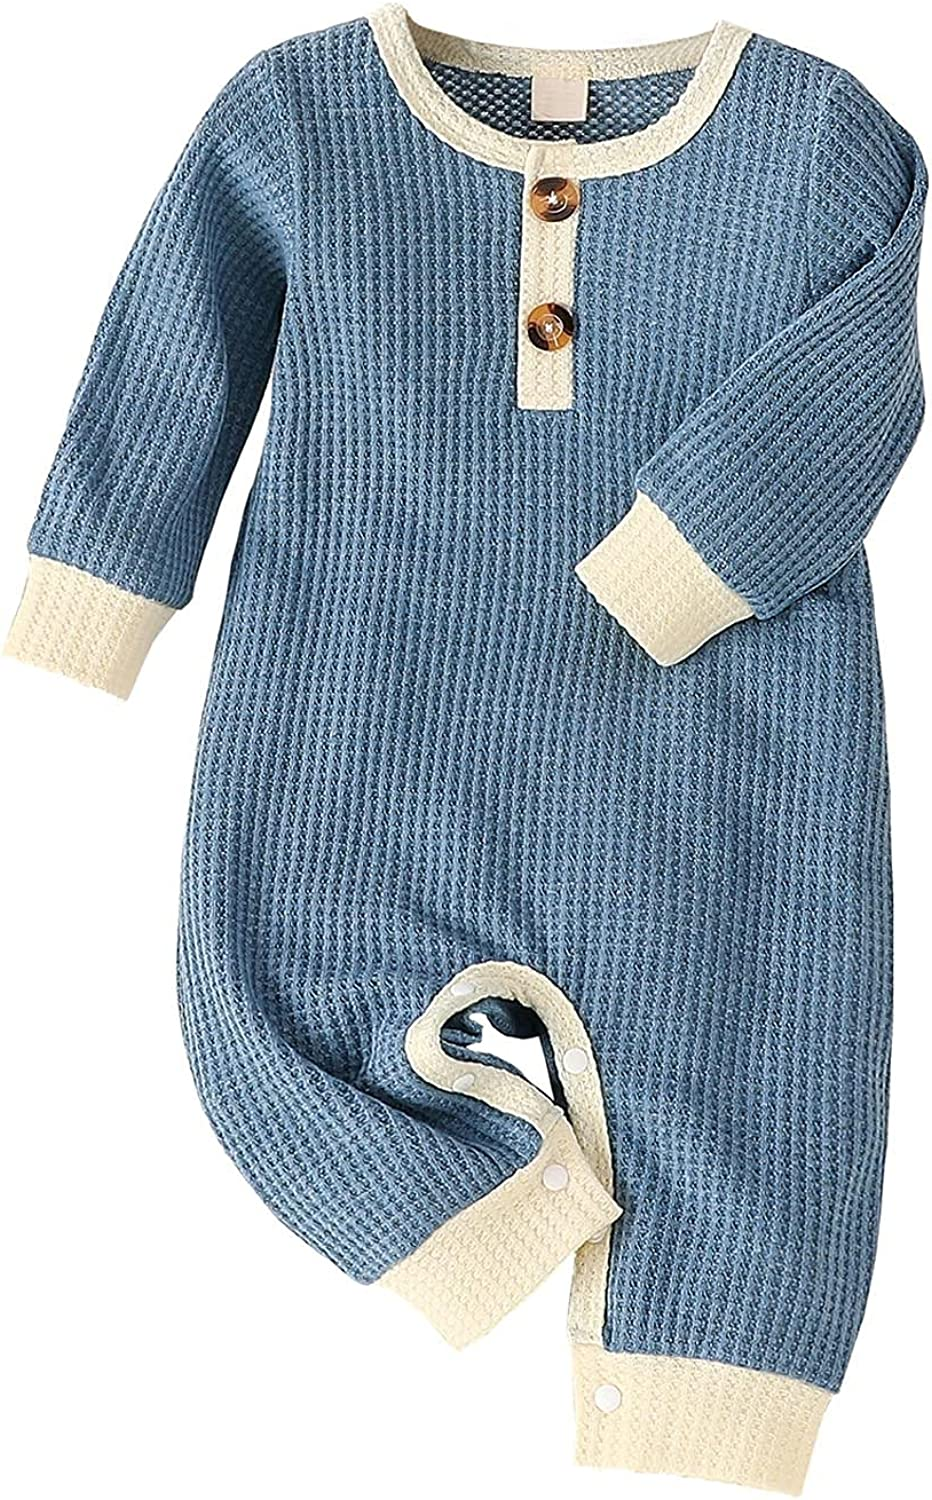 High Beauty products quality new Baby Romper Button Patch Long Jumpsui Cotton Clothes Knit Sleeve